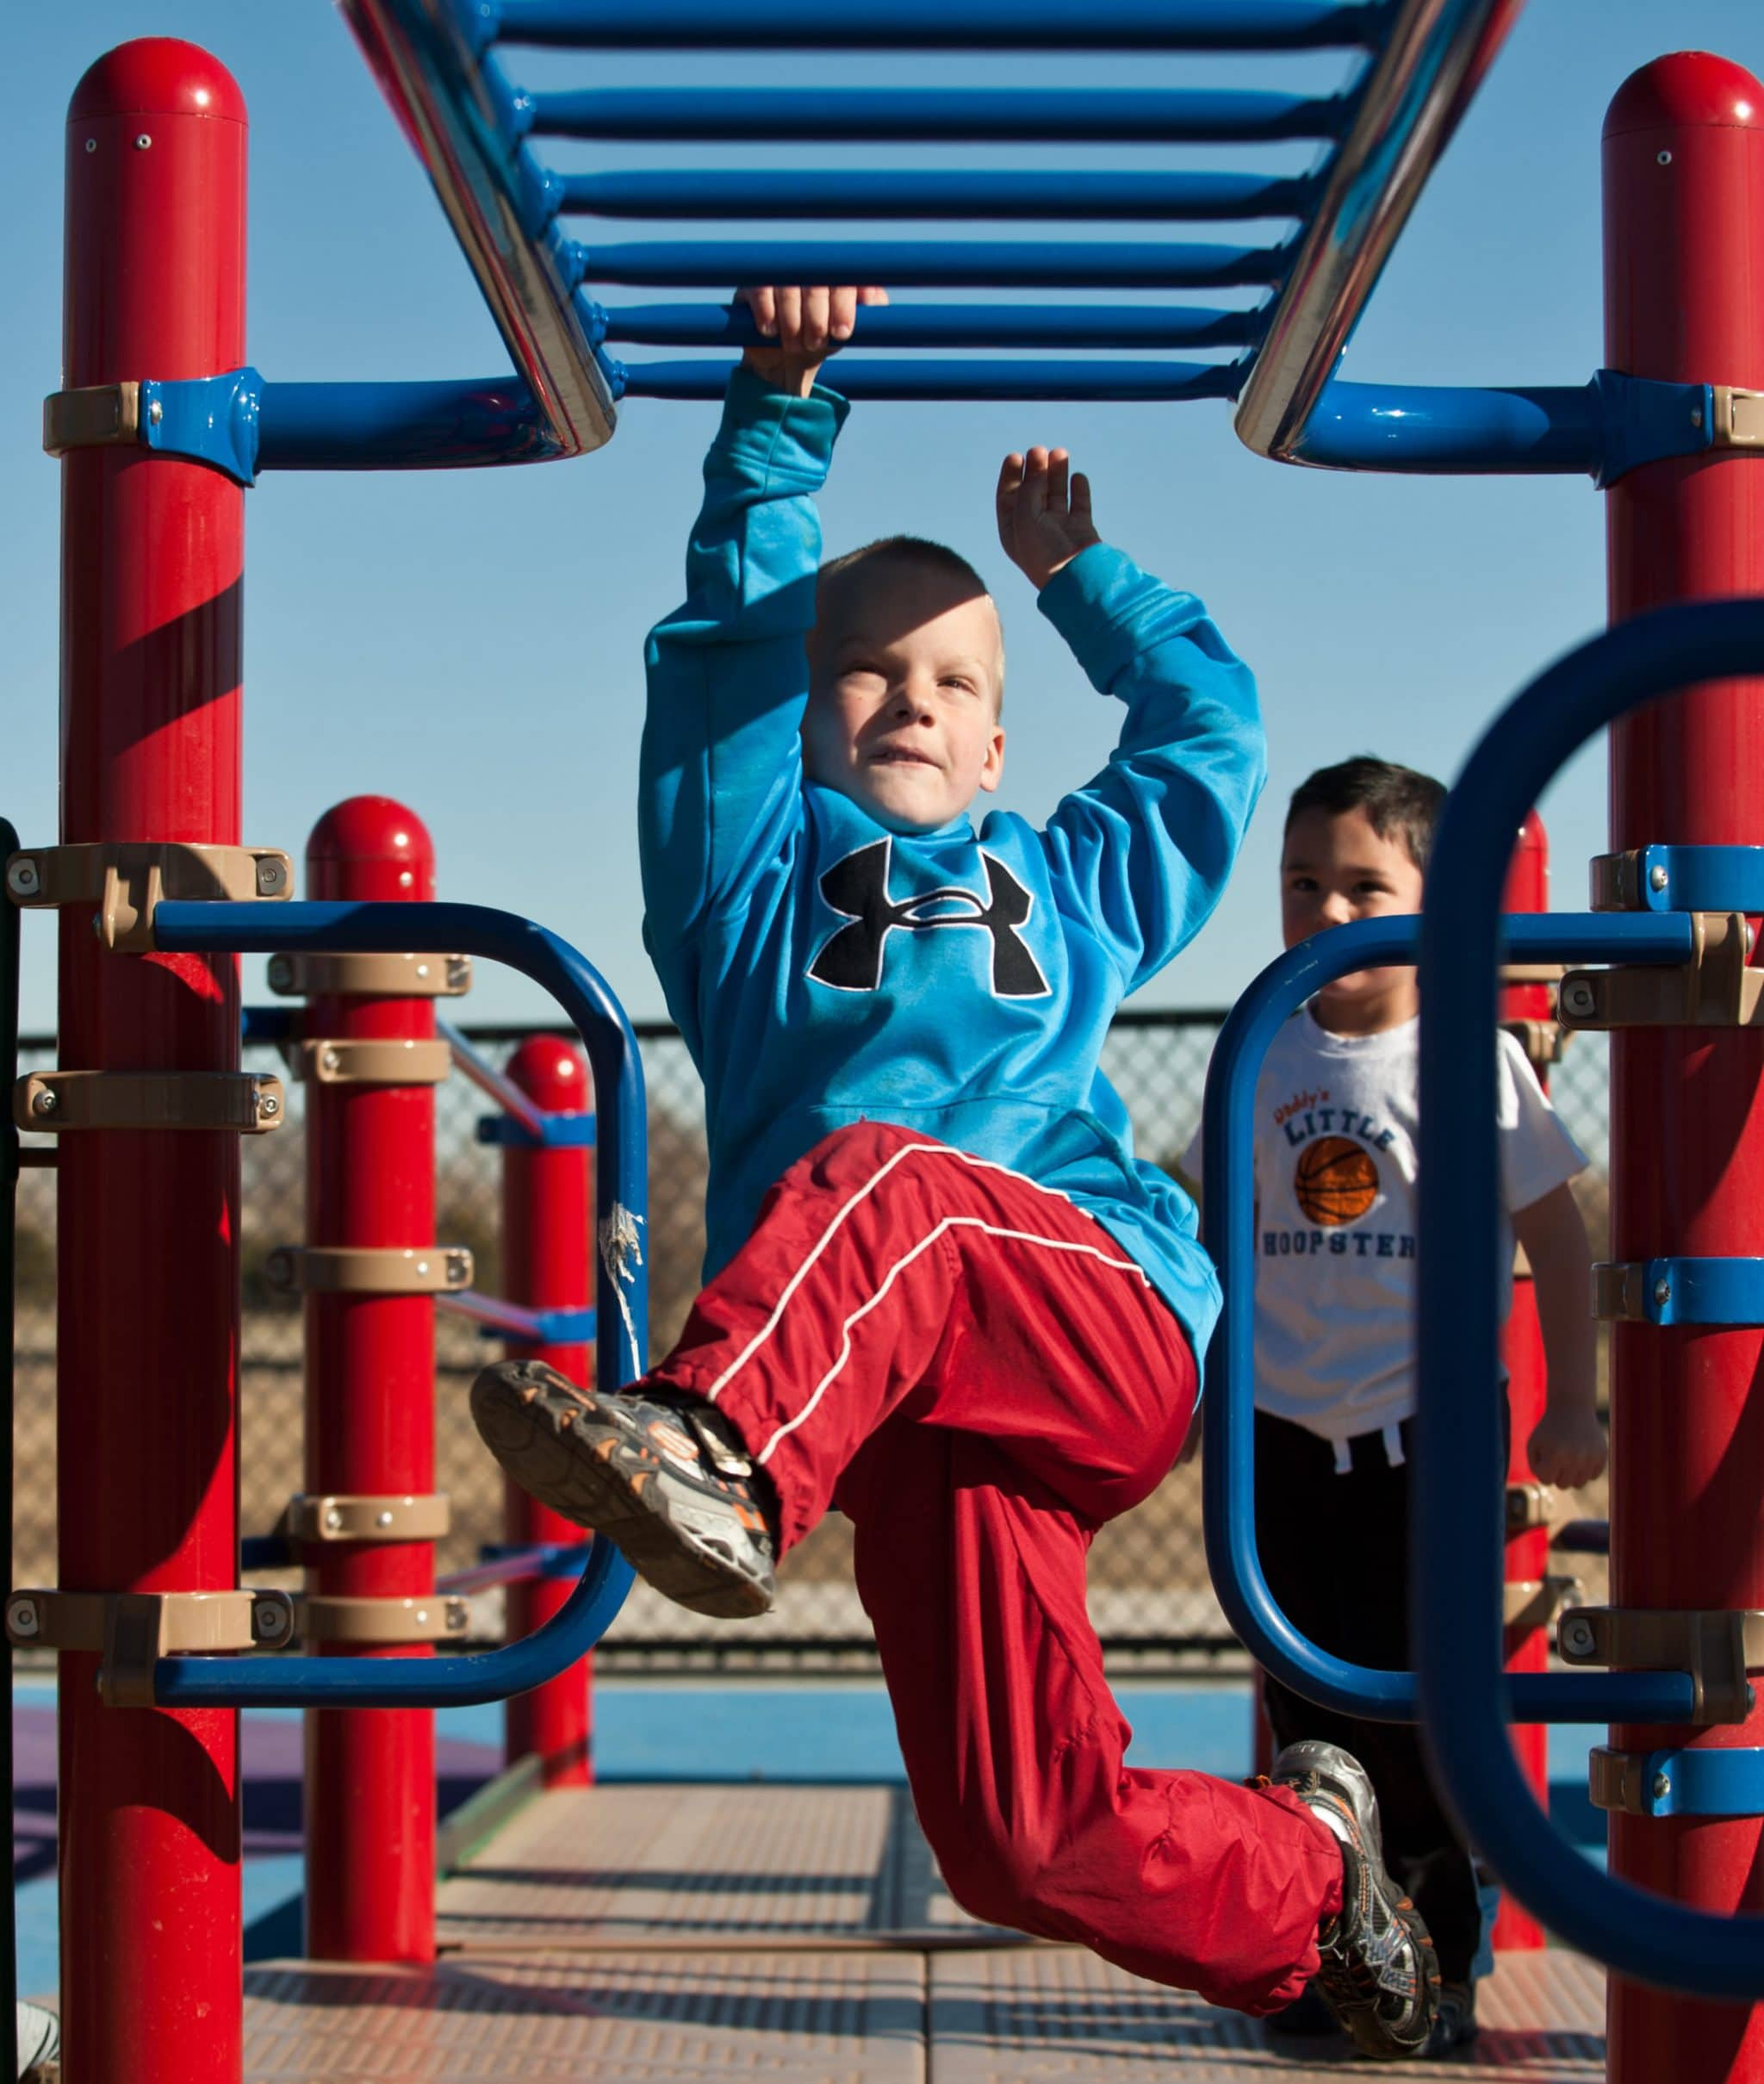 Blond caucasian boy hanging from the monkey bars at a playground